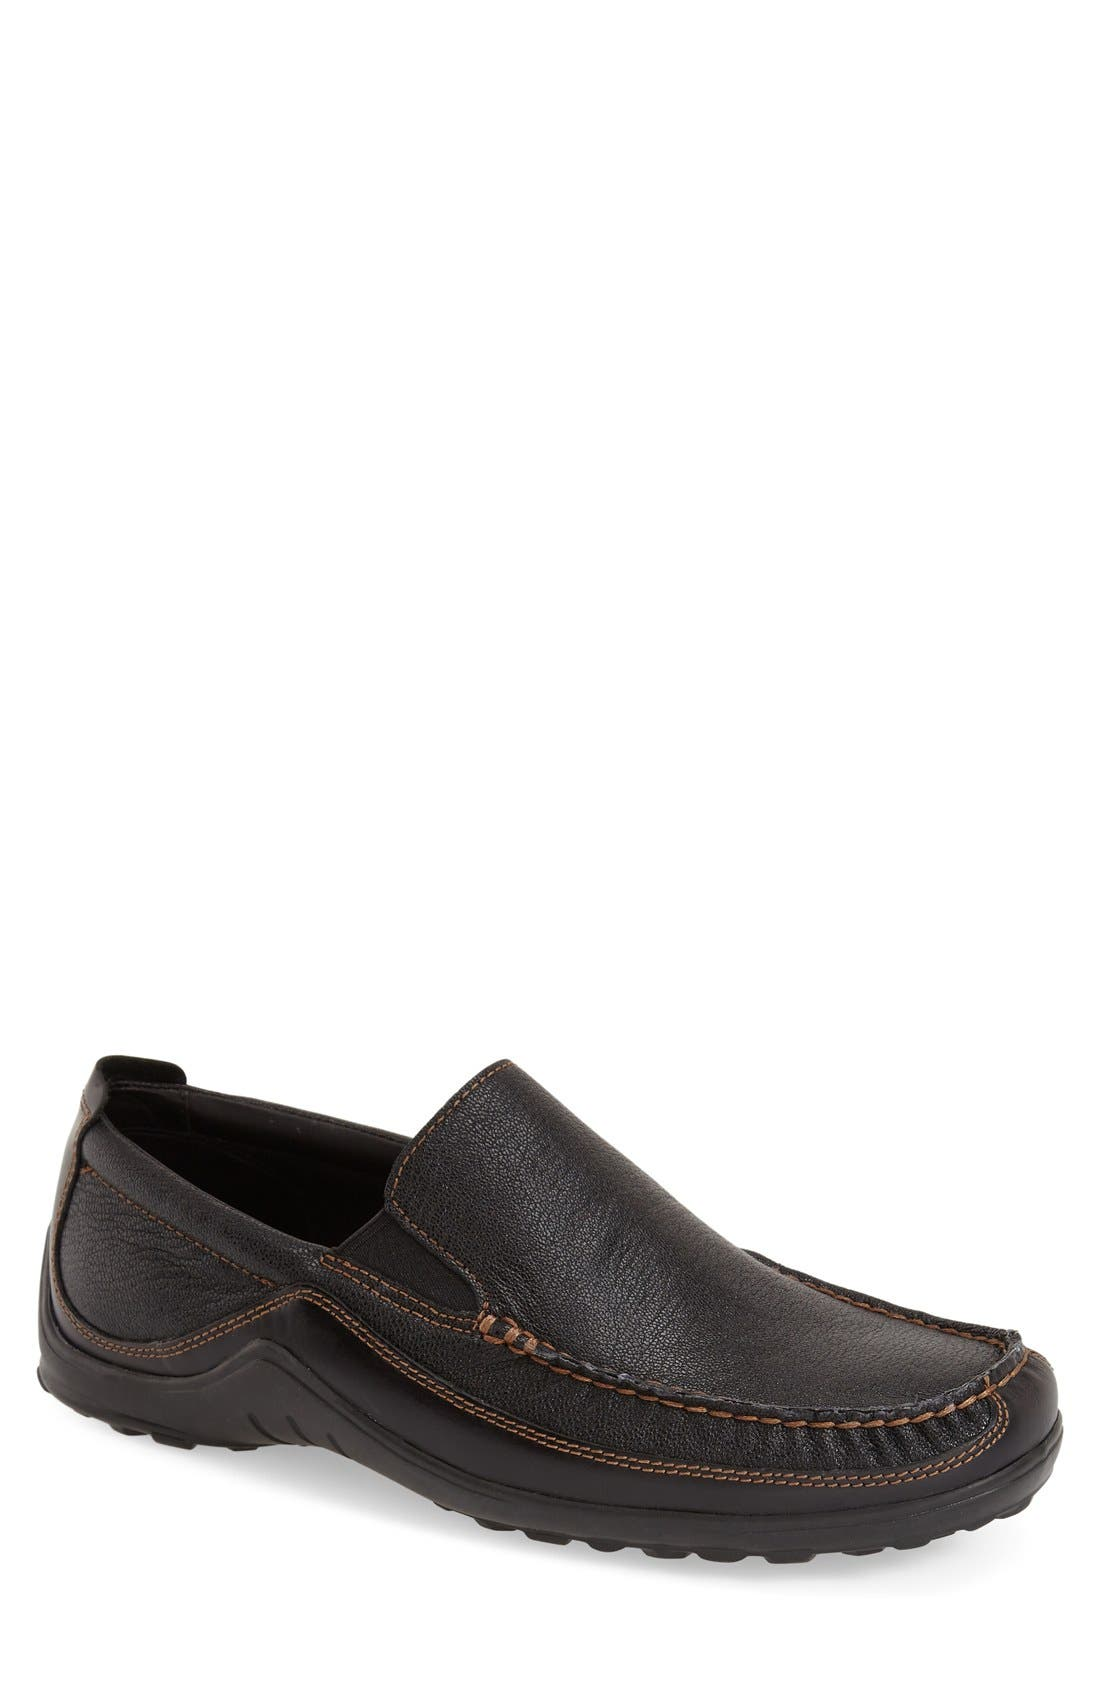 'Tucker Venetian' Loafer,                             Main thumbnail 1, color,                             BLACK